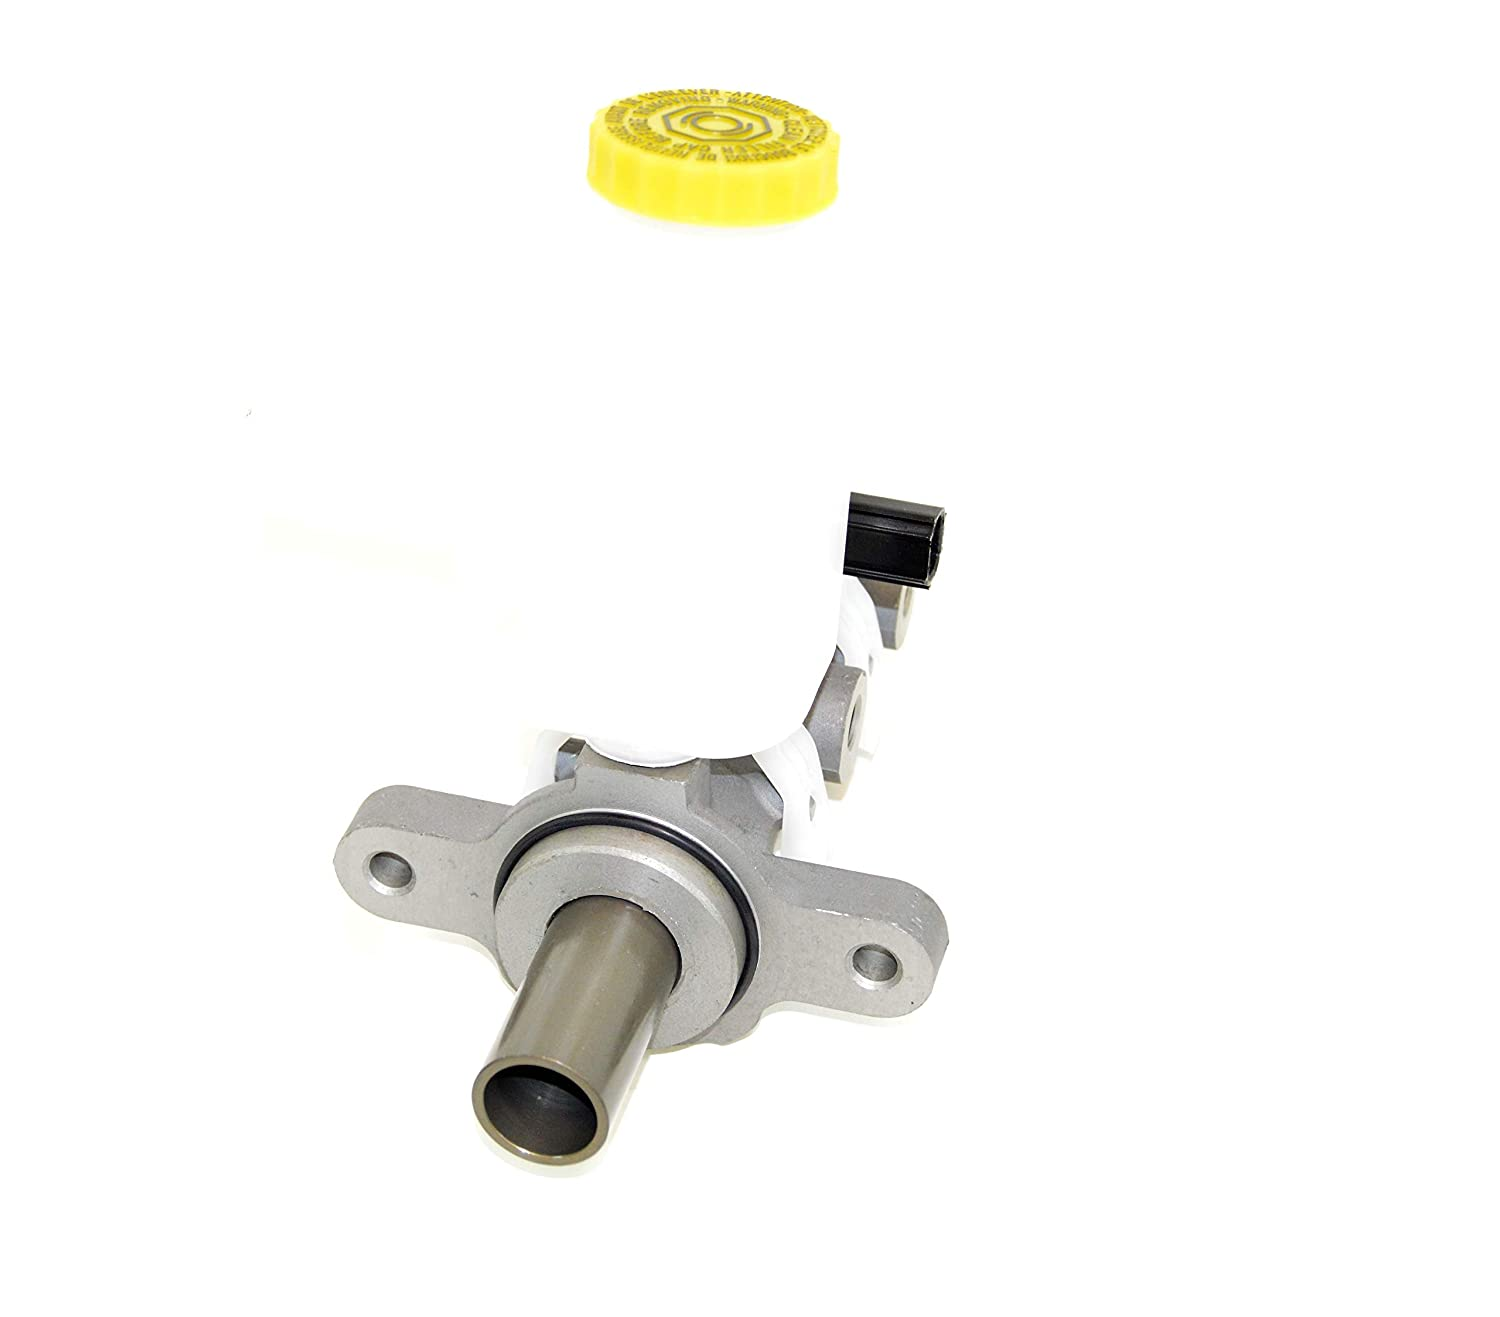 Brake Master Cylinder with 5 Year Warranty for Dodge Nitro Jeep Liberty with Reservoir